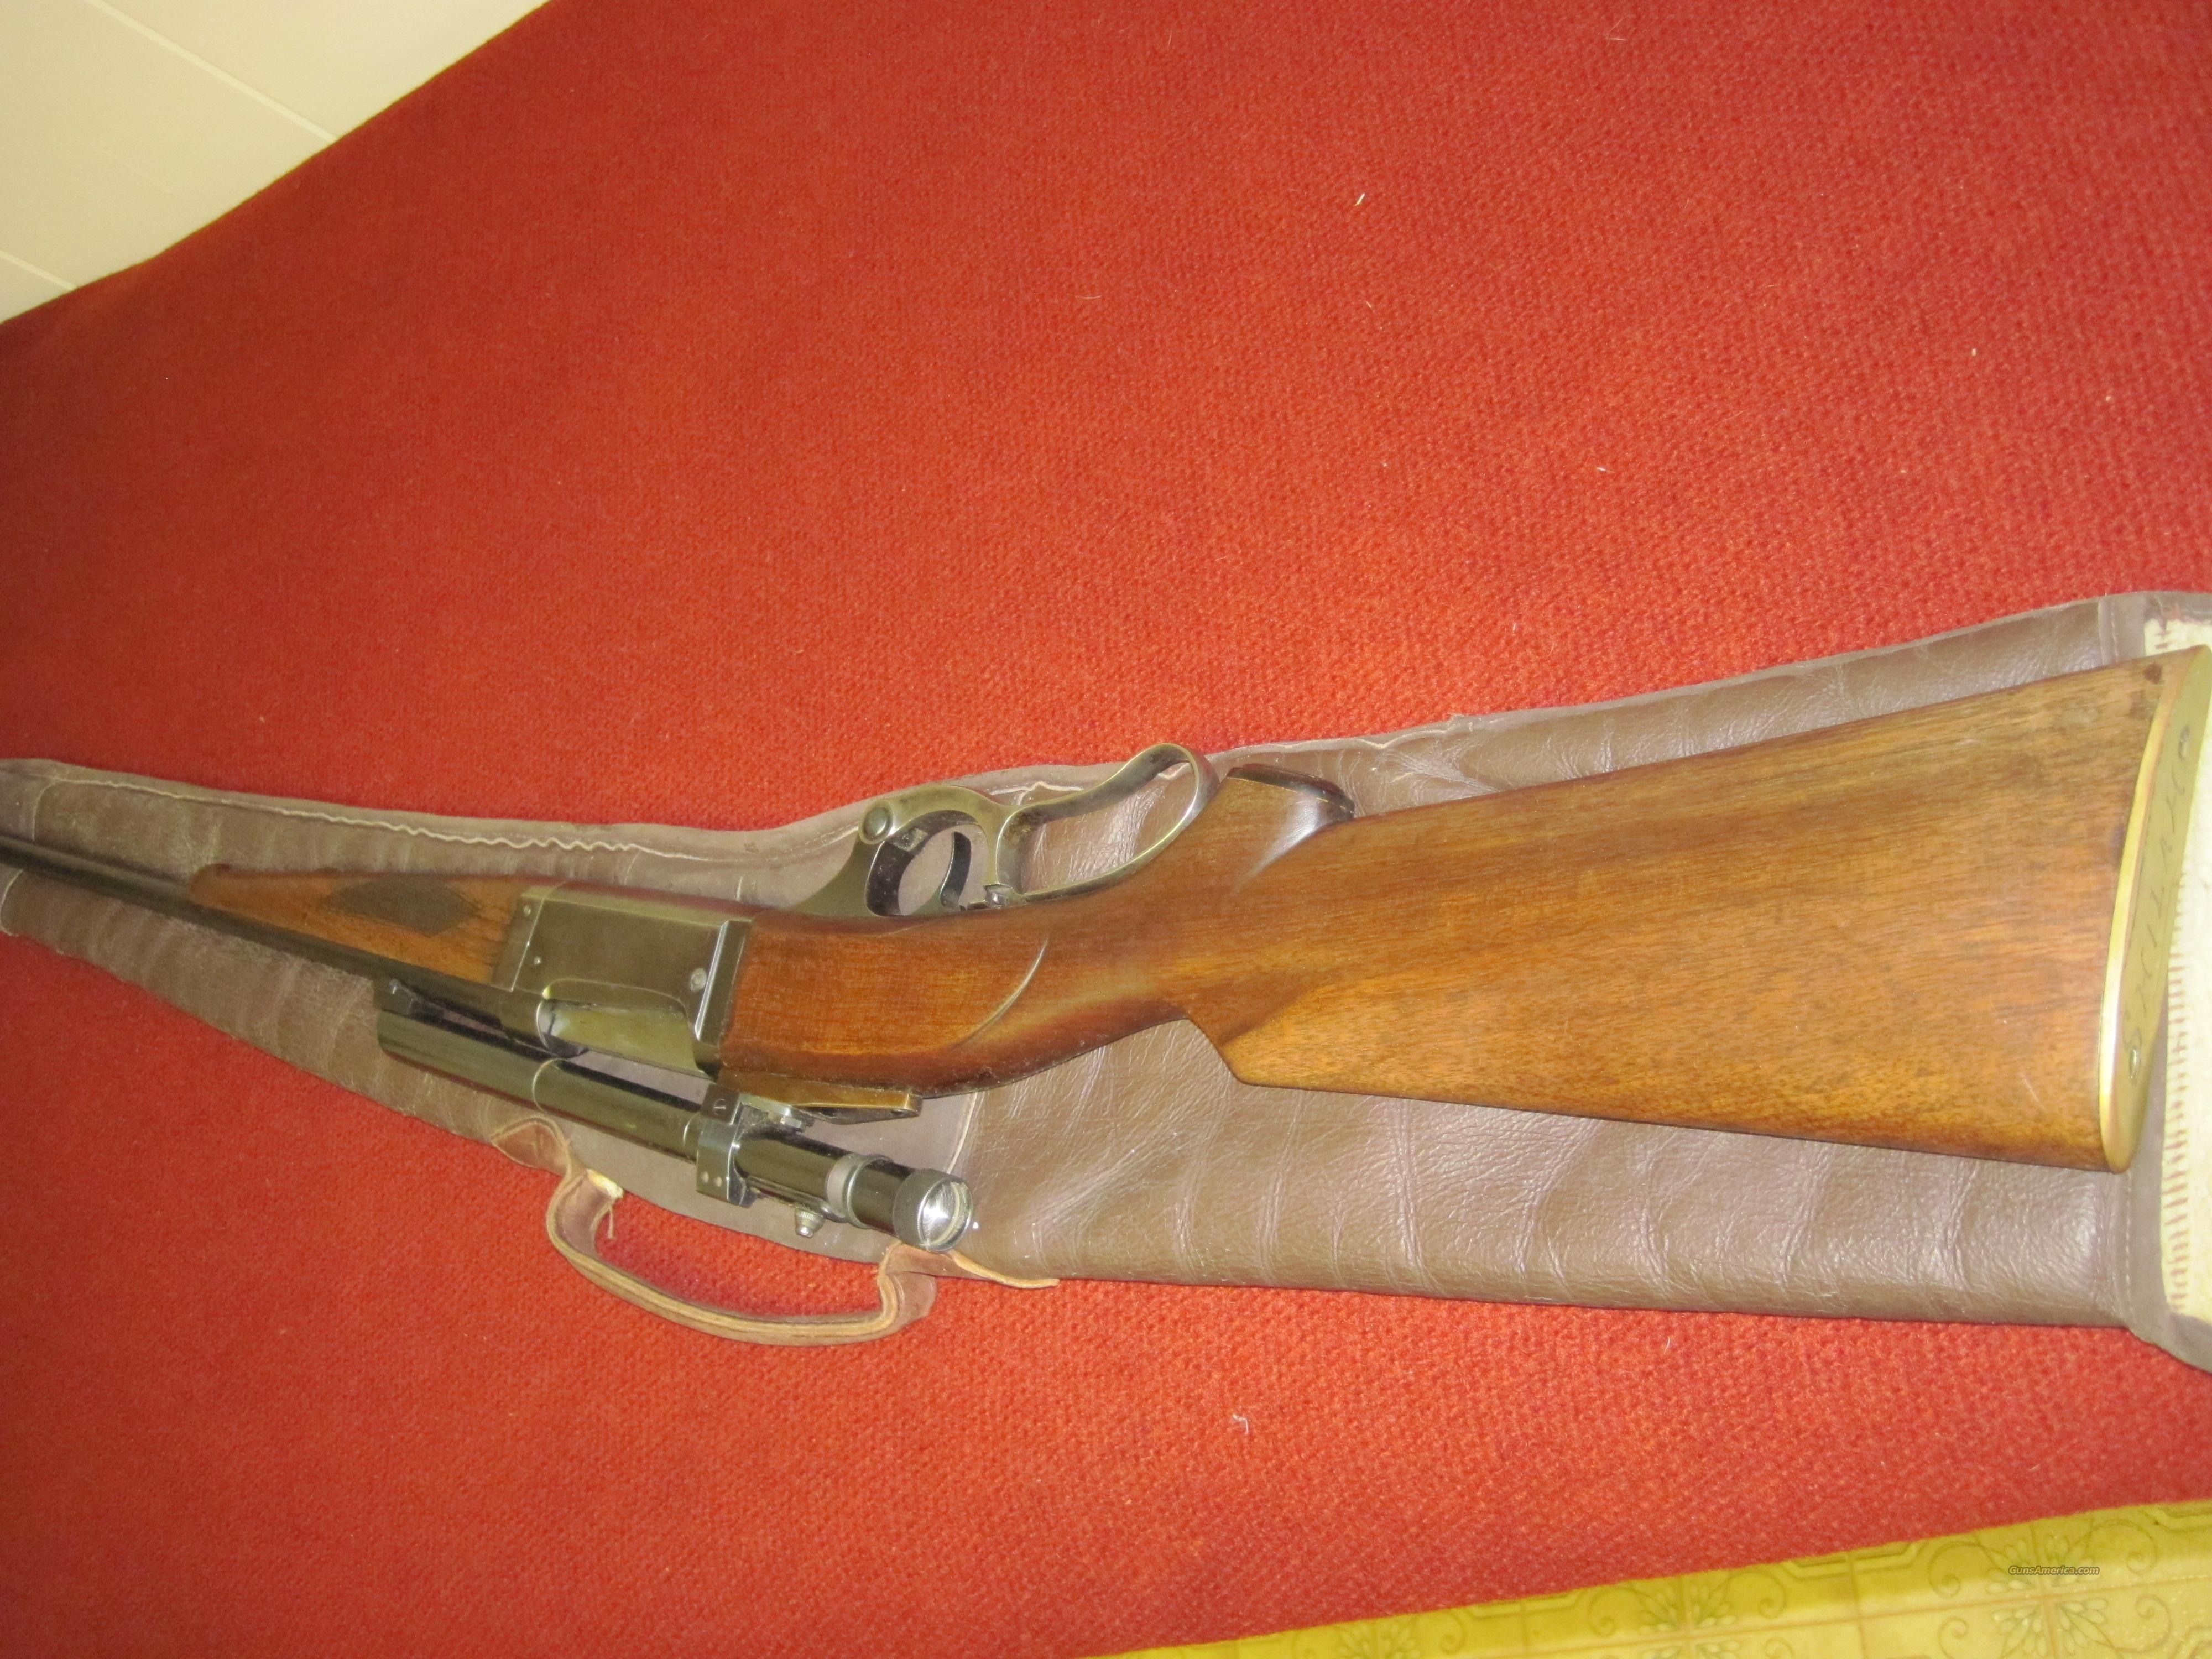 Savage 1899, 250-3000 #194696 with weaver scope  Guns > Rifles > Savage Rifles > Model 95/99 Family